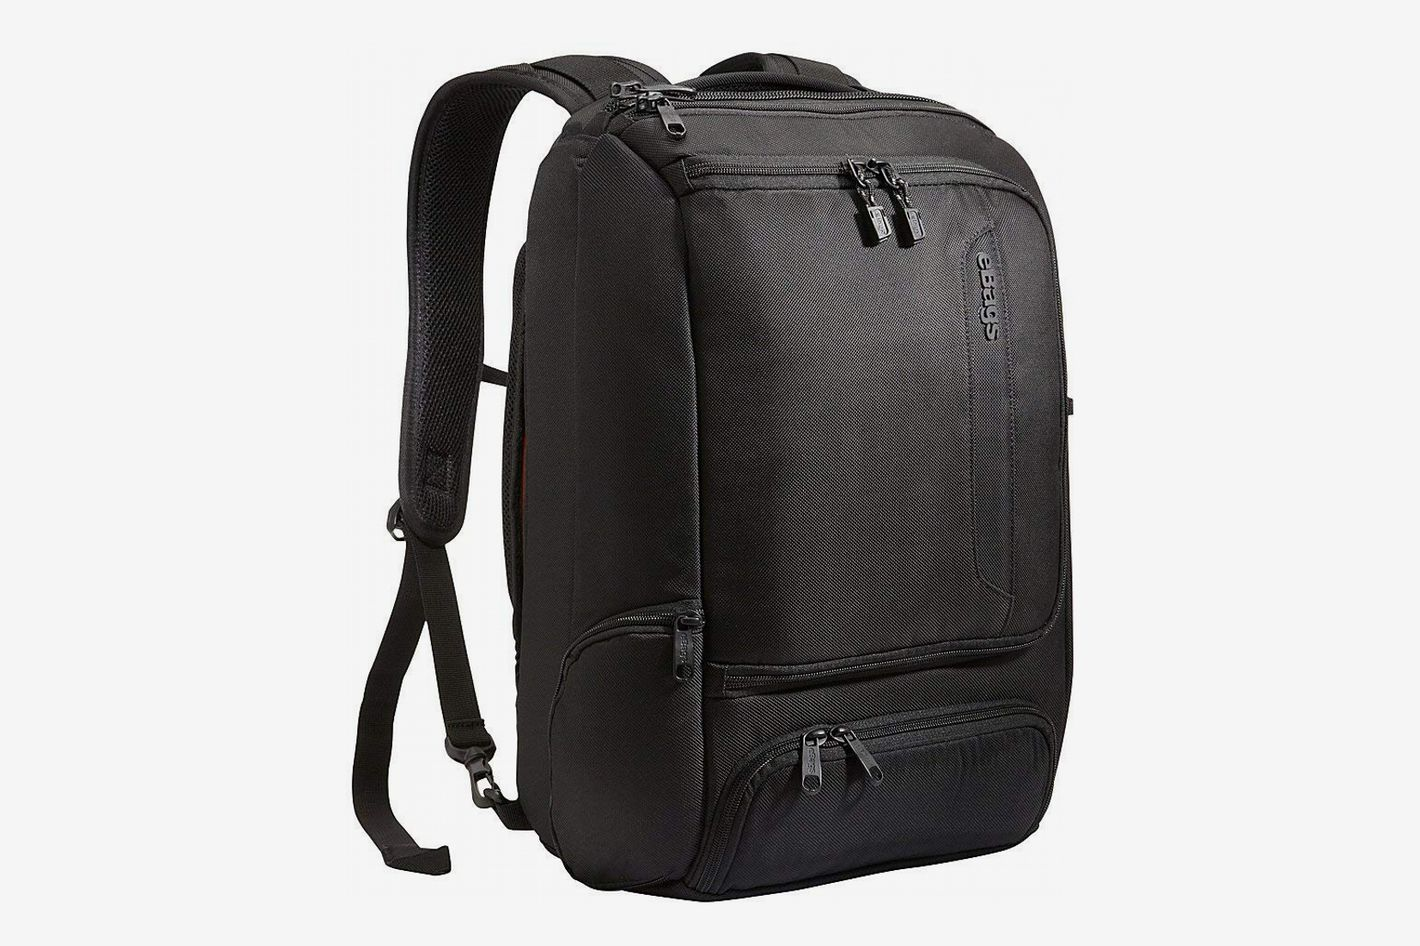 907416b1c9 The 14 Best Laptop Backpacks on Amazon 2019